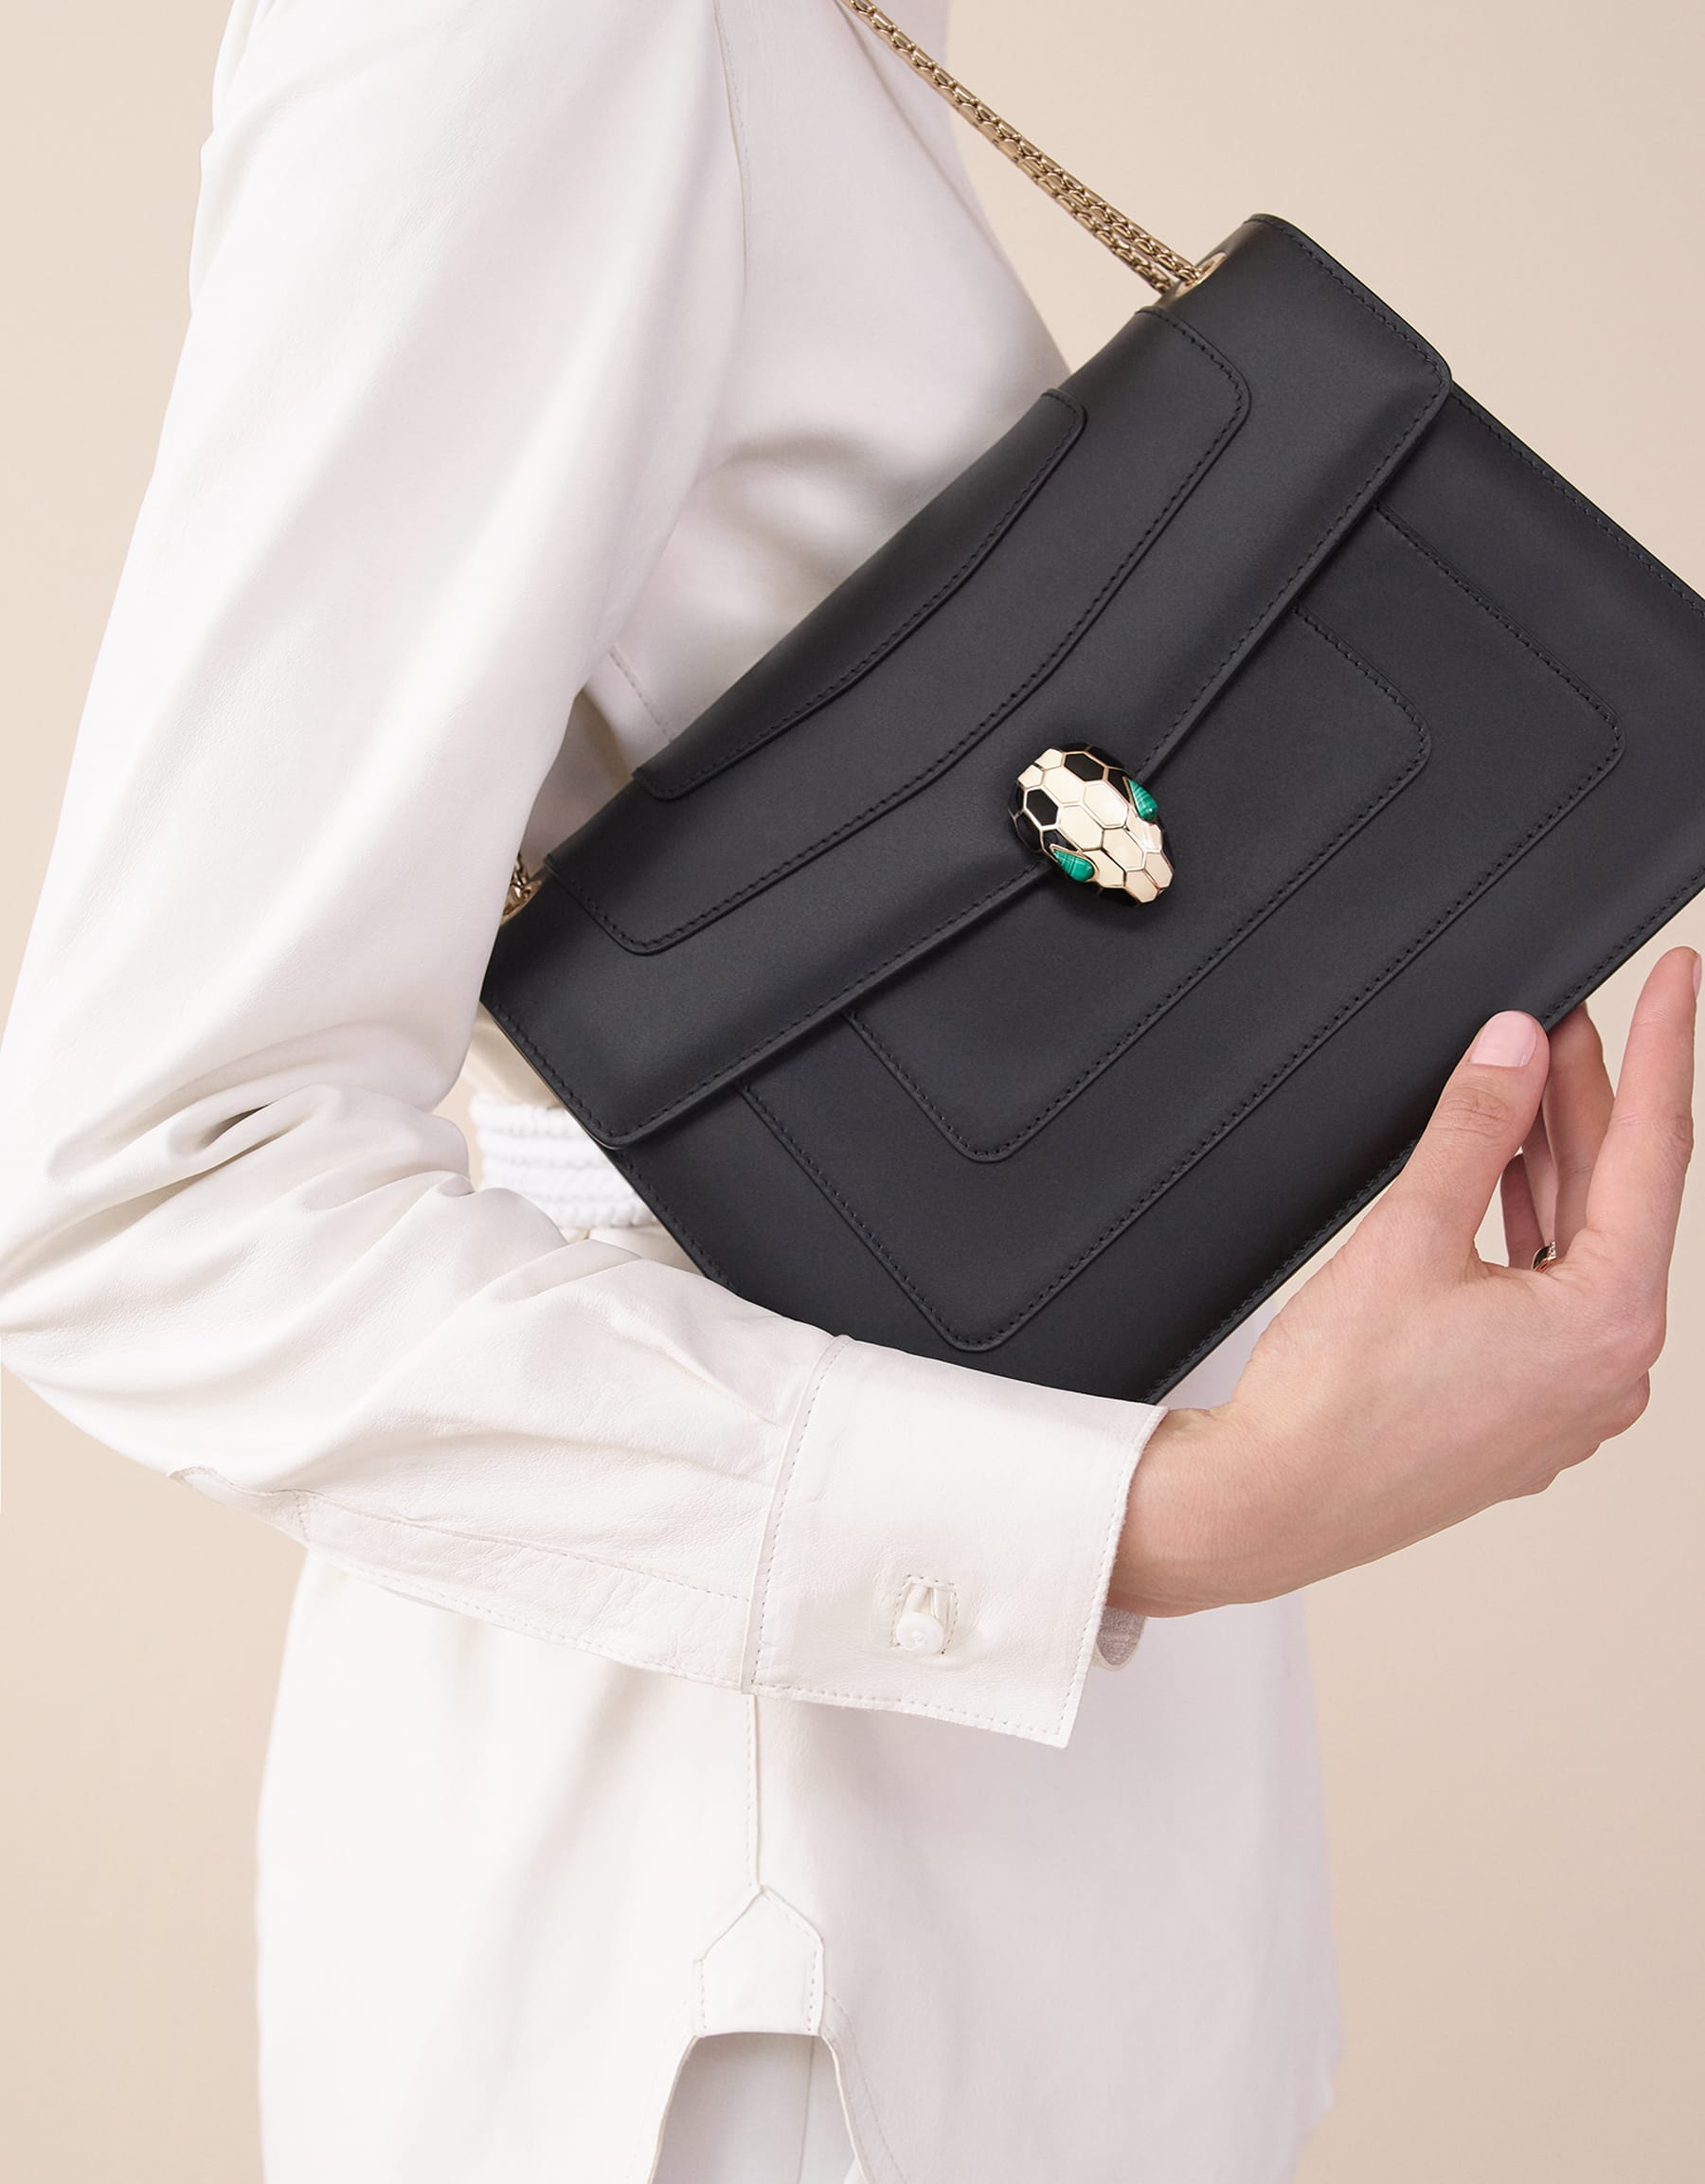 Black calf leather shoulder bag with brass light gold plated black and white enamel Serpenti head closure with malachite eyes. 35106 image 5